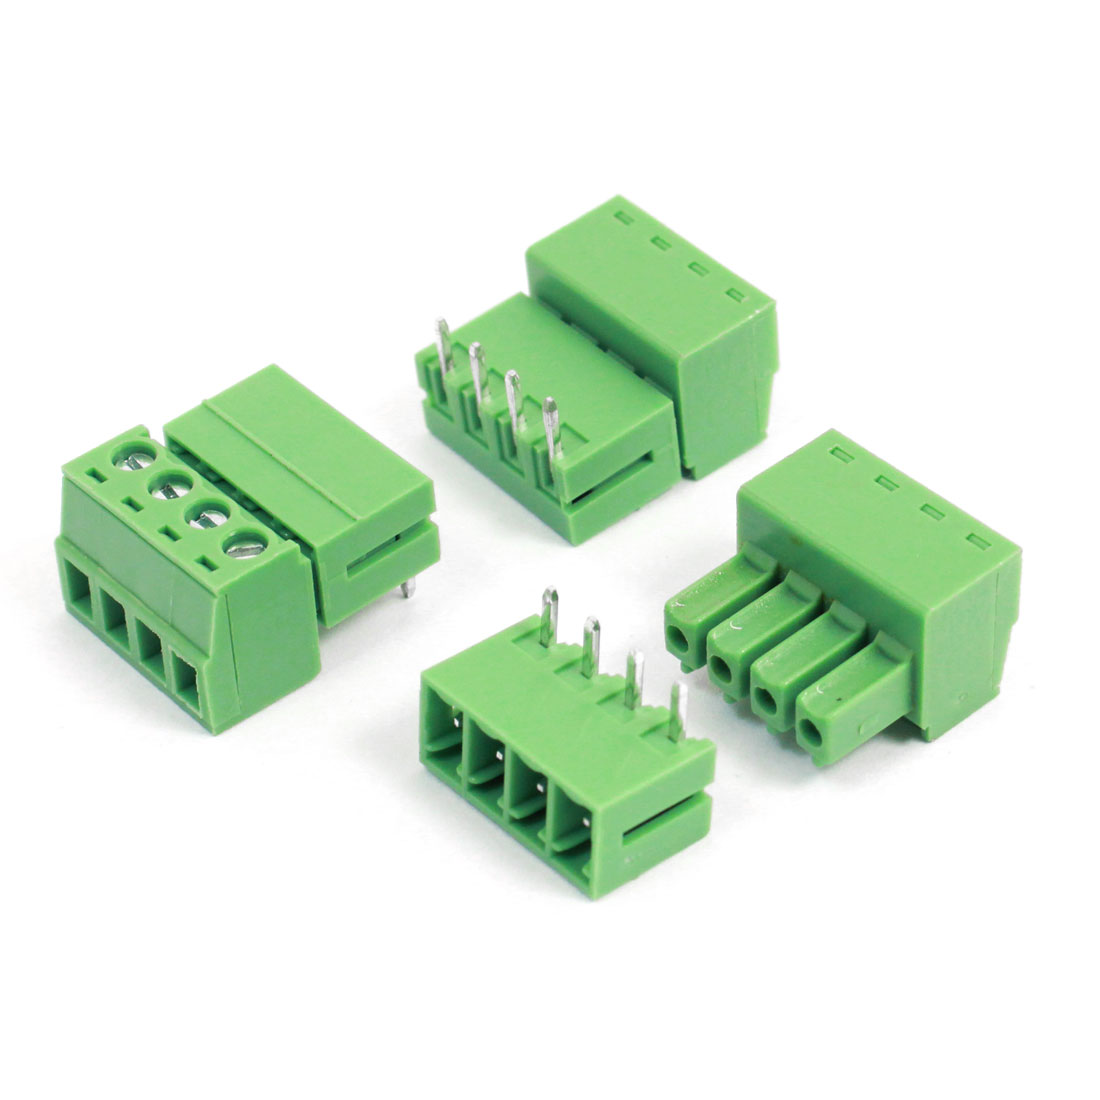 3pcs 3.81mm Pitch 4 Pins AC 300V 8A Staight Terminal Blocks Connectors